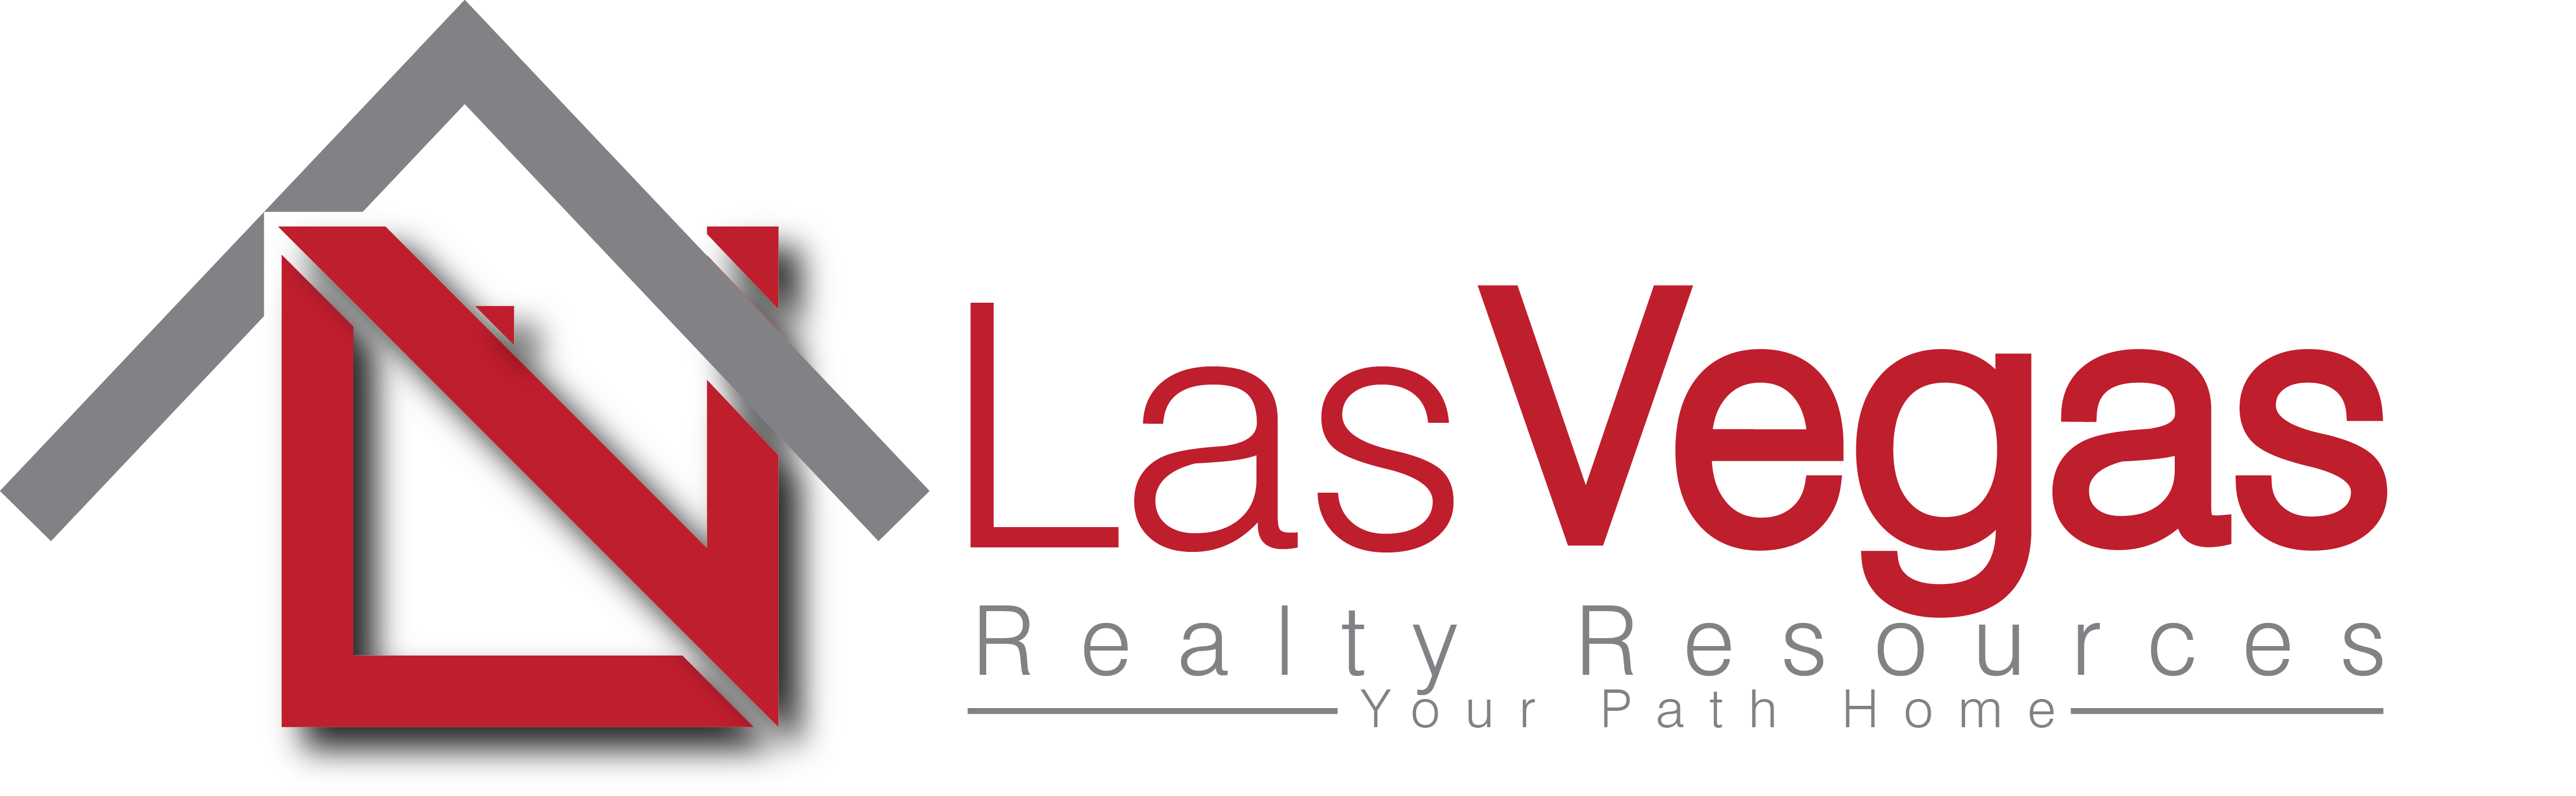 Las Vegas Realty Resources